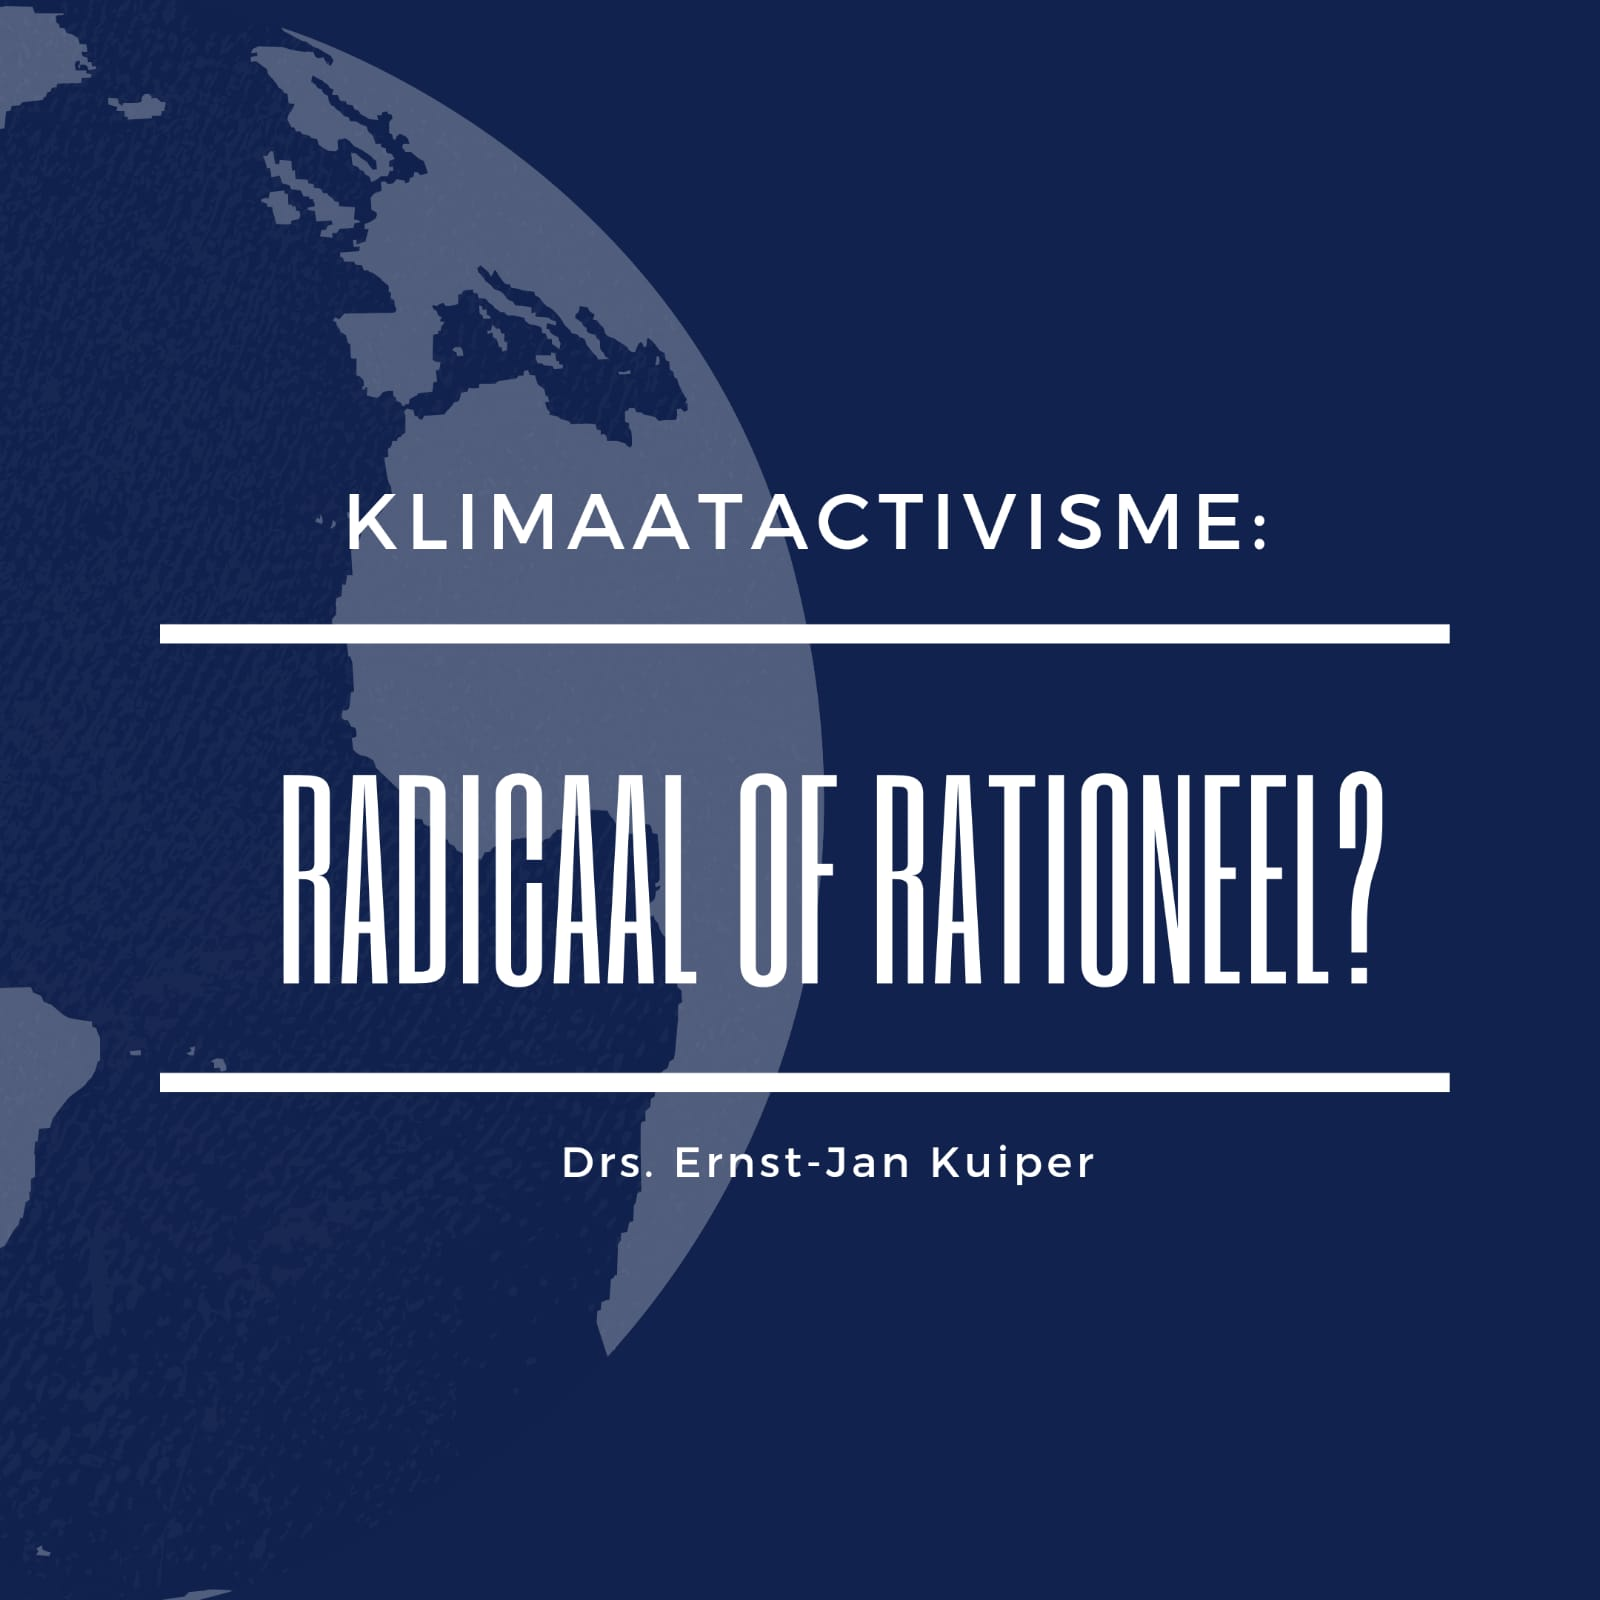 Klimaatactivisme: radicaal of rationeel?